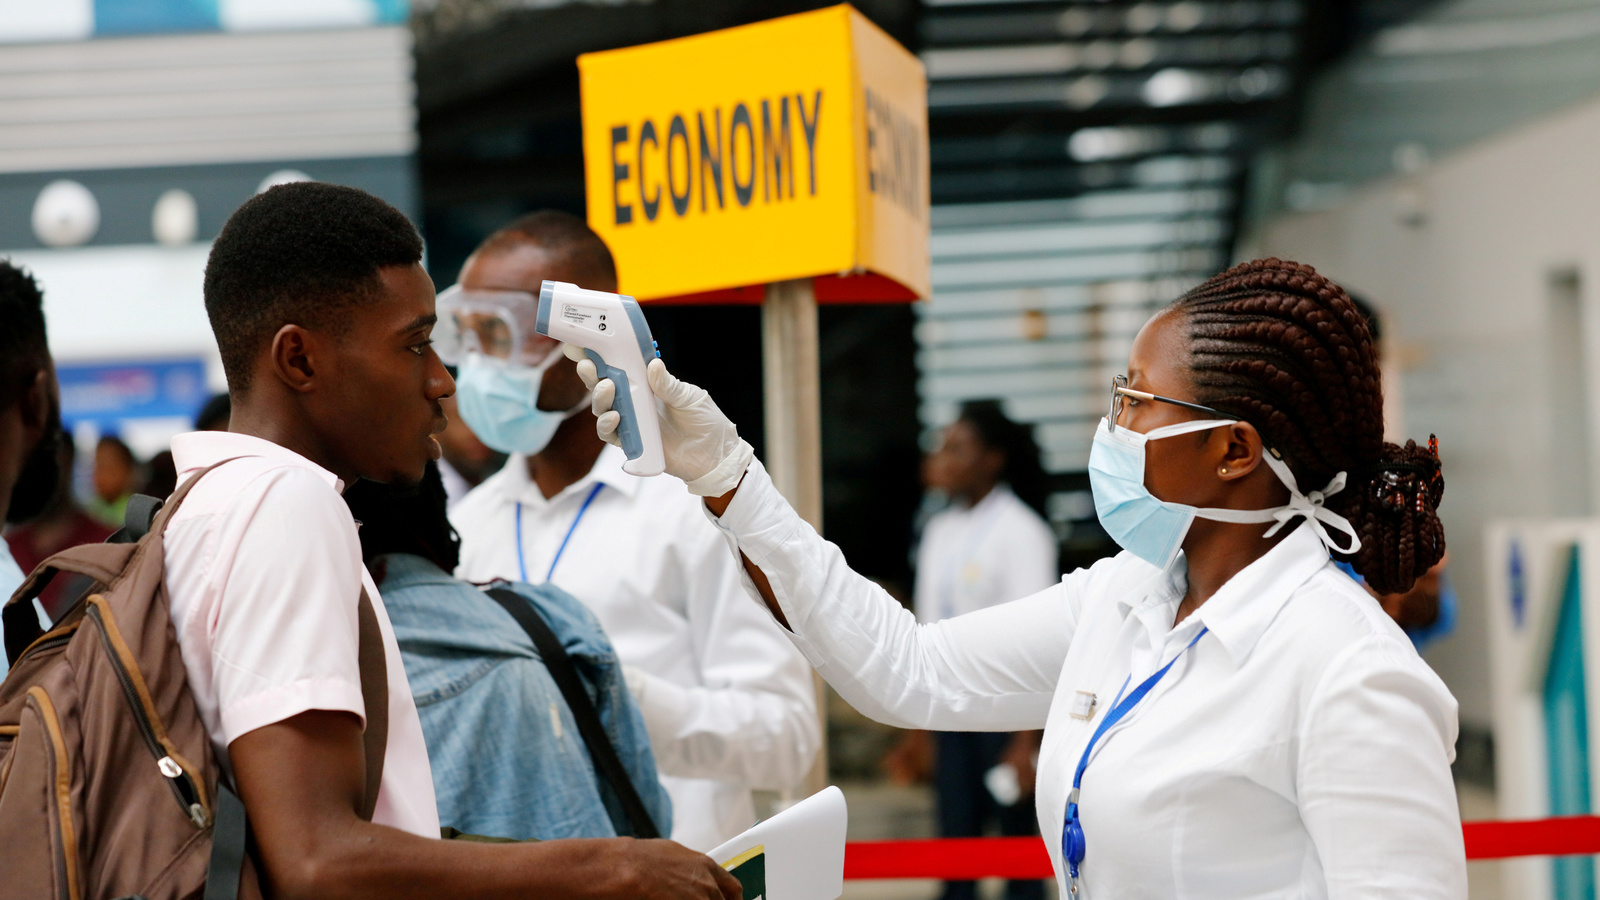 The Potential for the Coronavirus in Africa